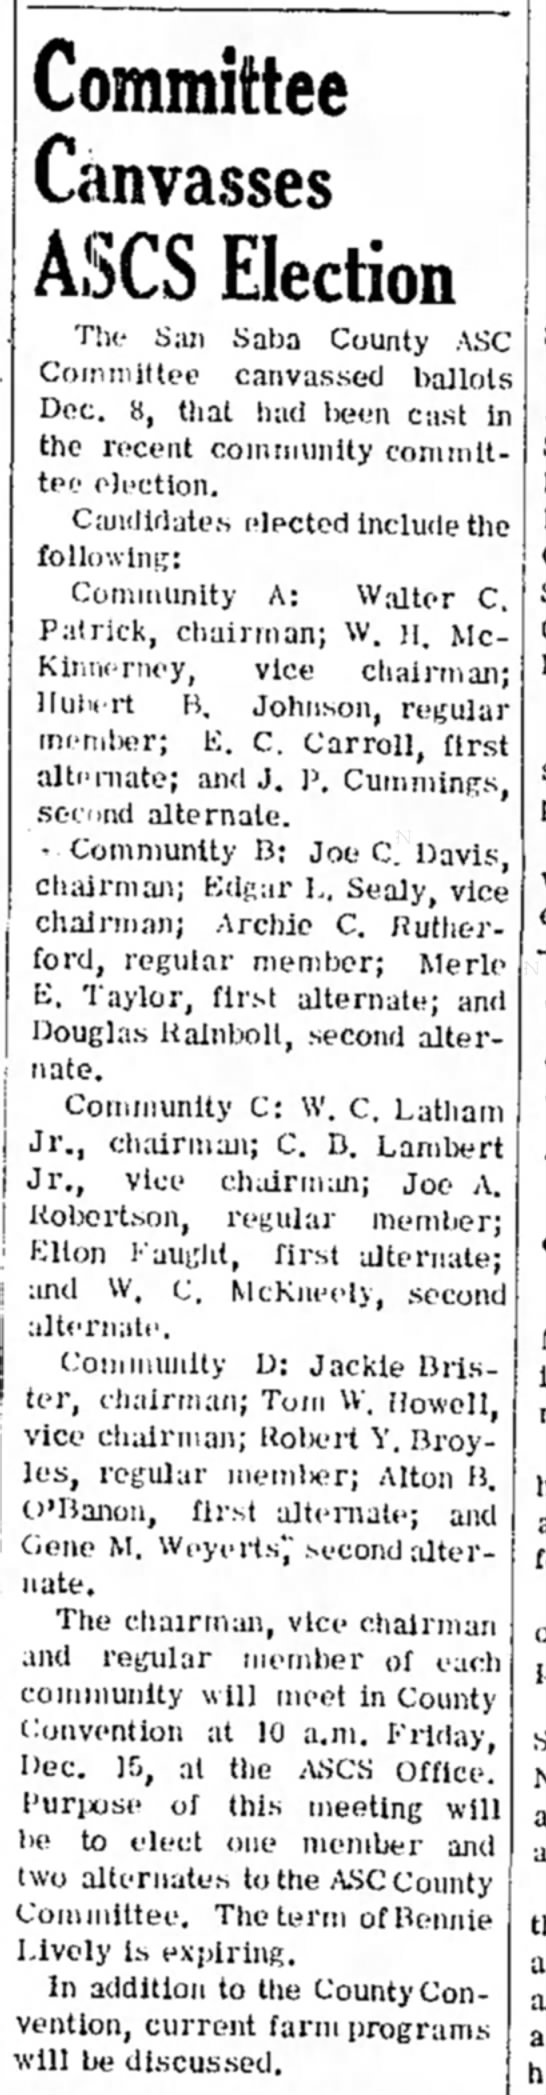 The San Saba News and Star 14 Dec 1972 Committee Canvasses ASCS Election -